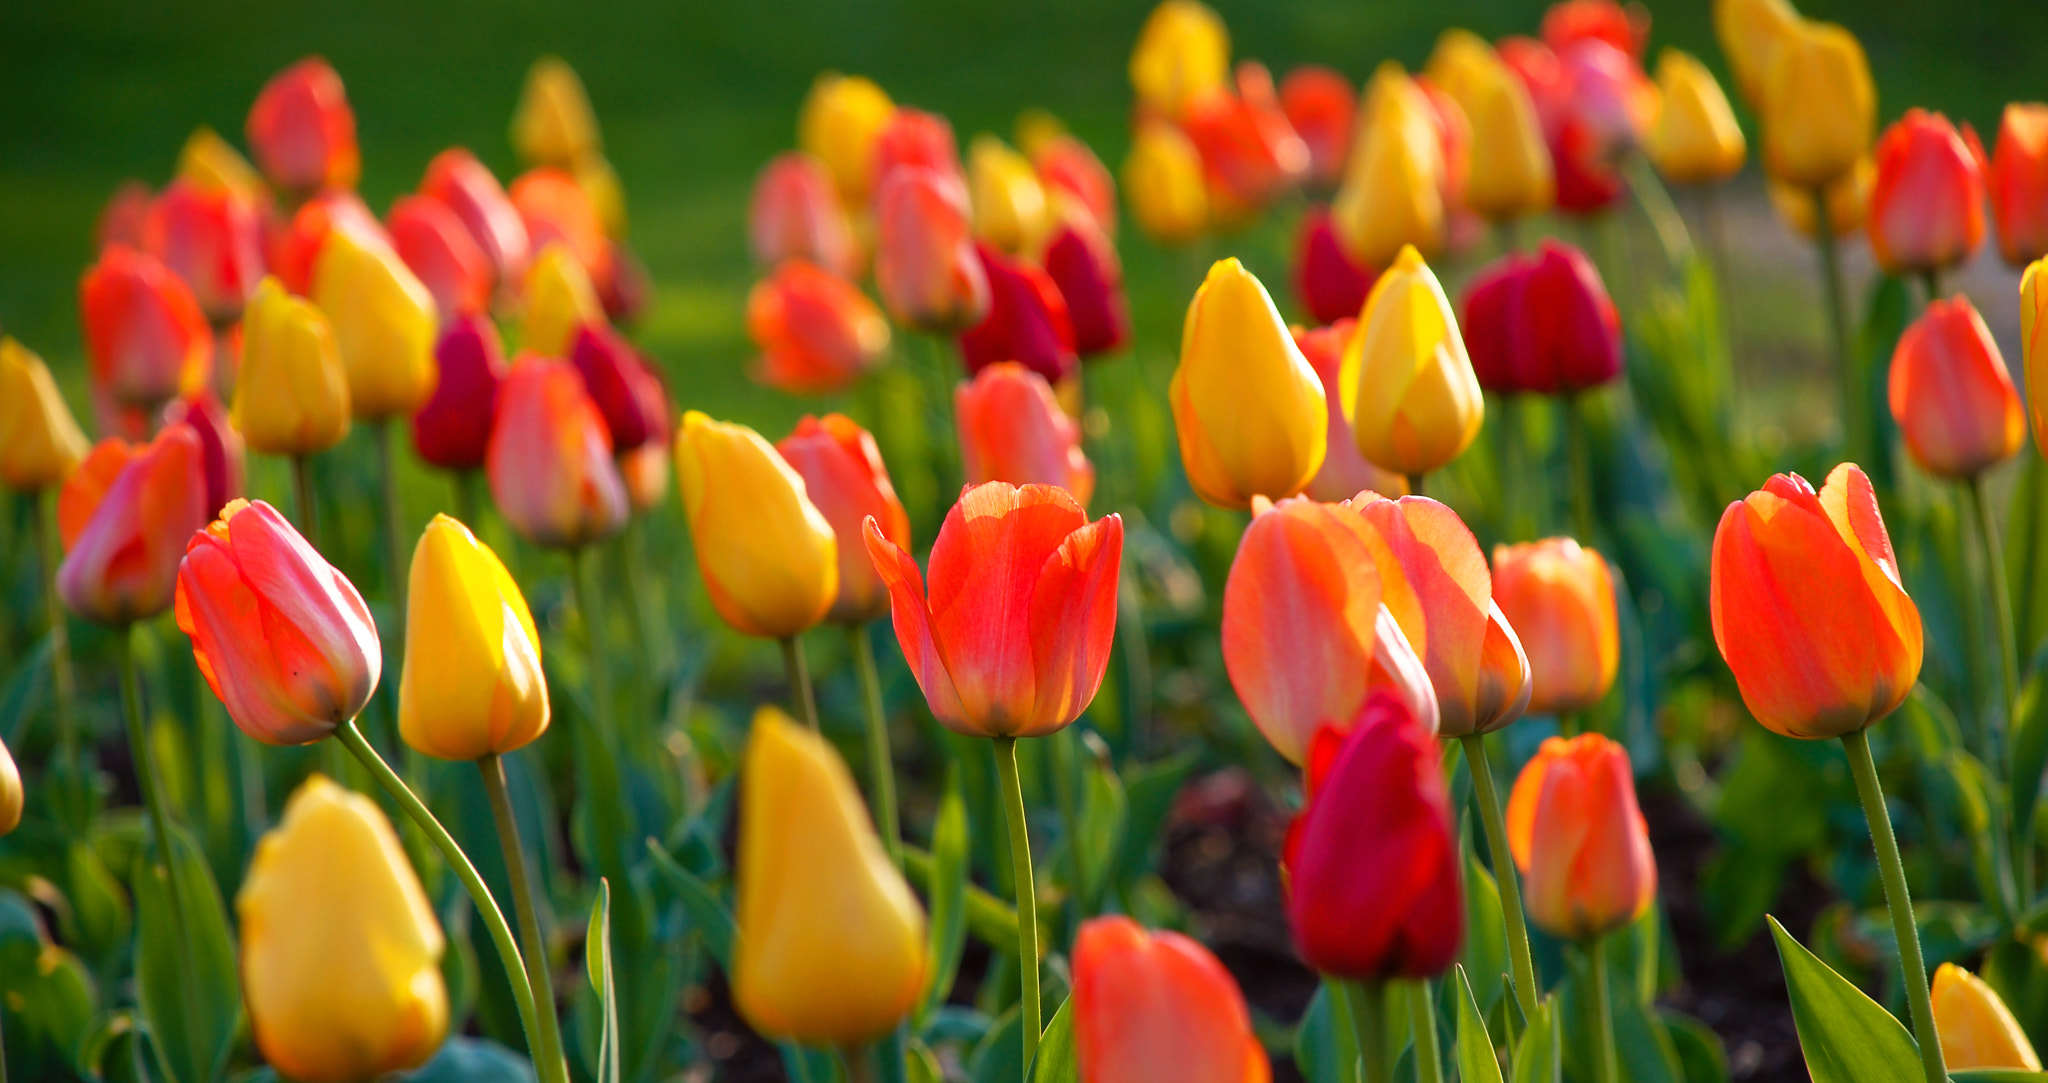 Photograph Tulips by Curtiss Simpson on 500px